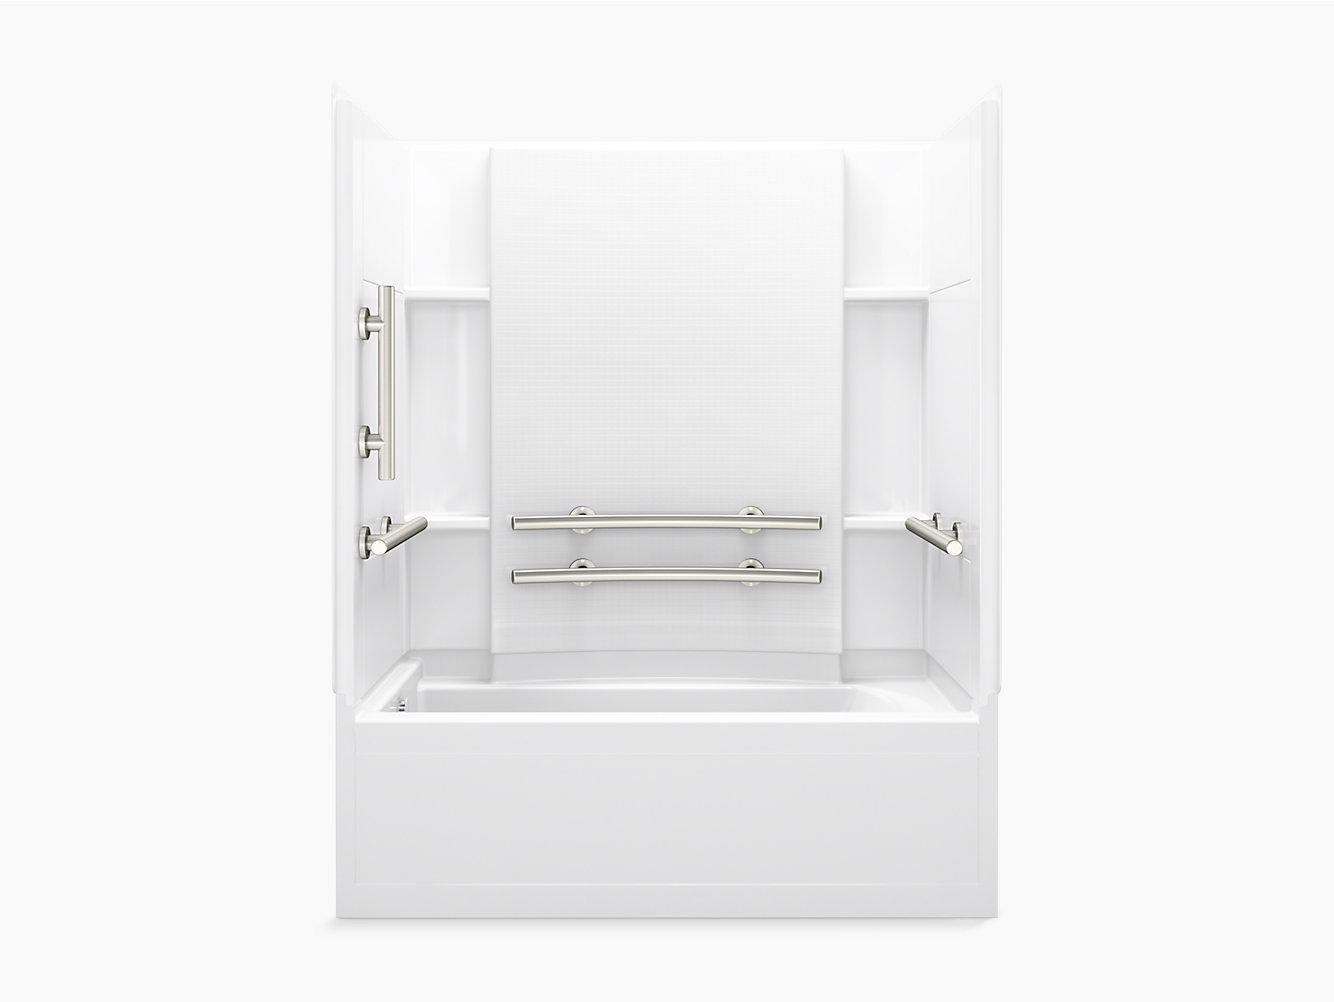 "Accord Series 7115, 60"" x 32"" ADA Bath/Shower With Grab Bars and ..."